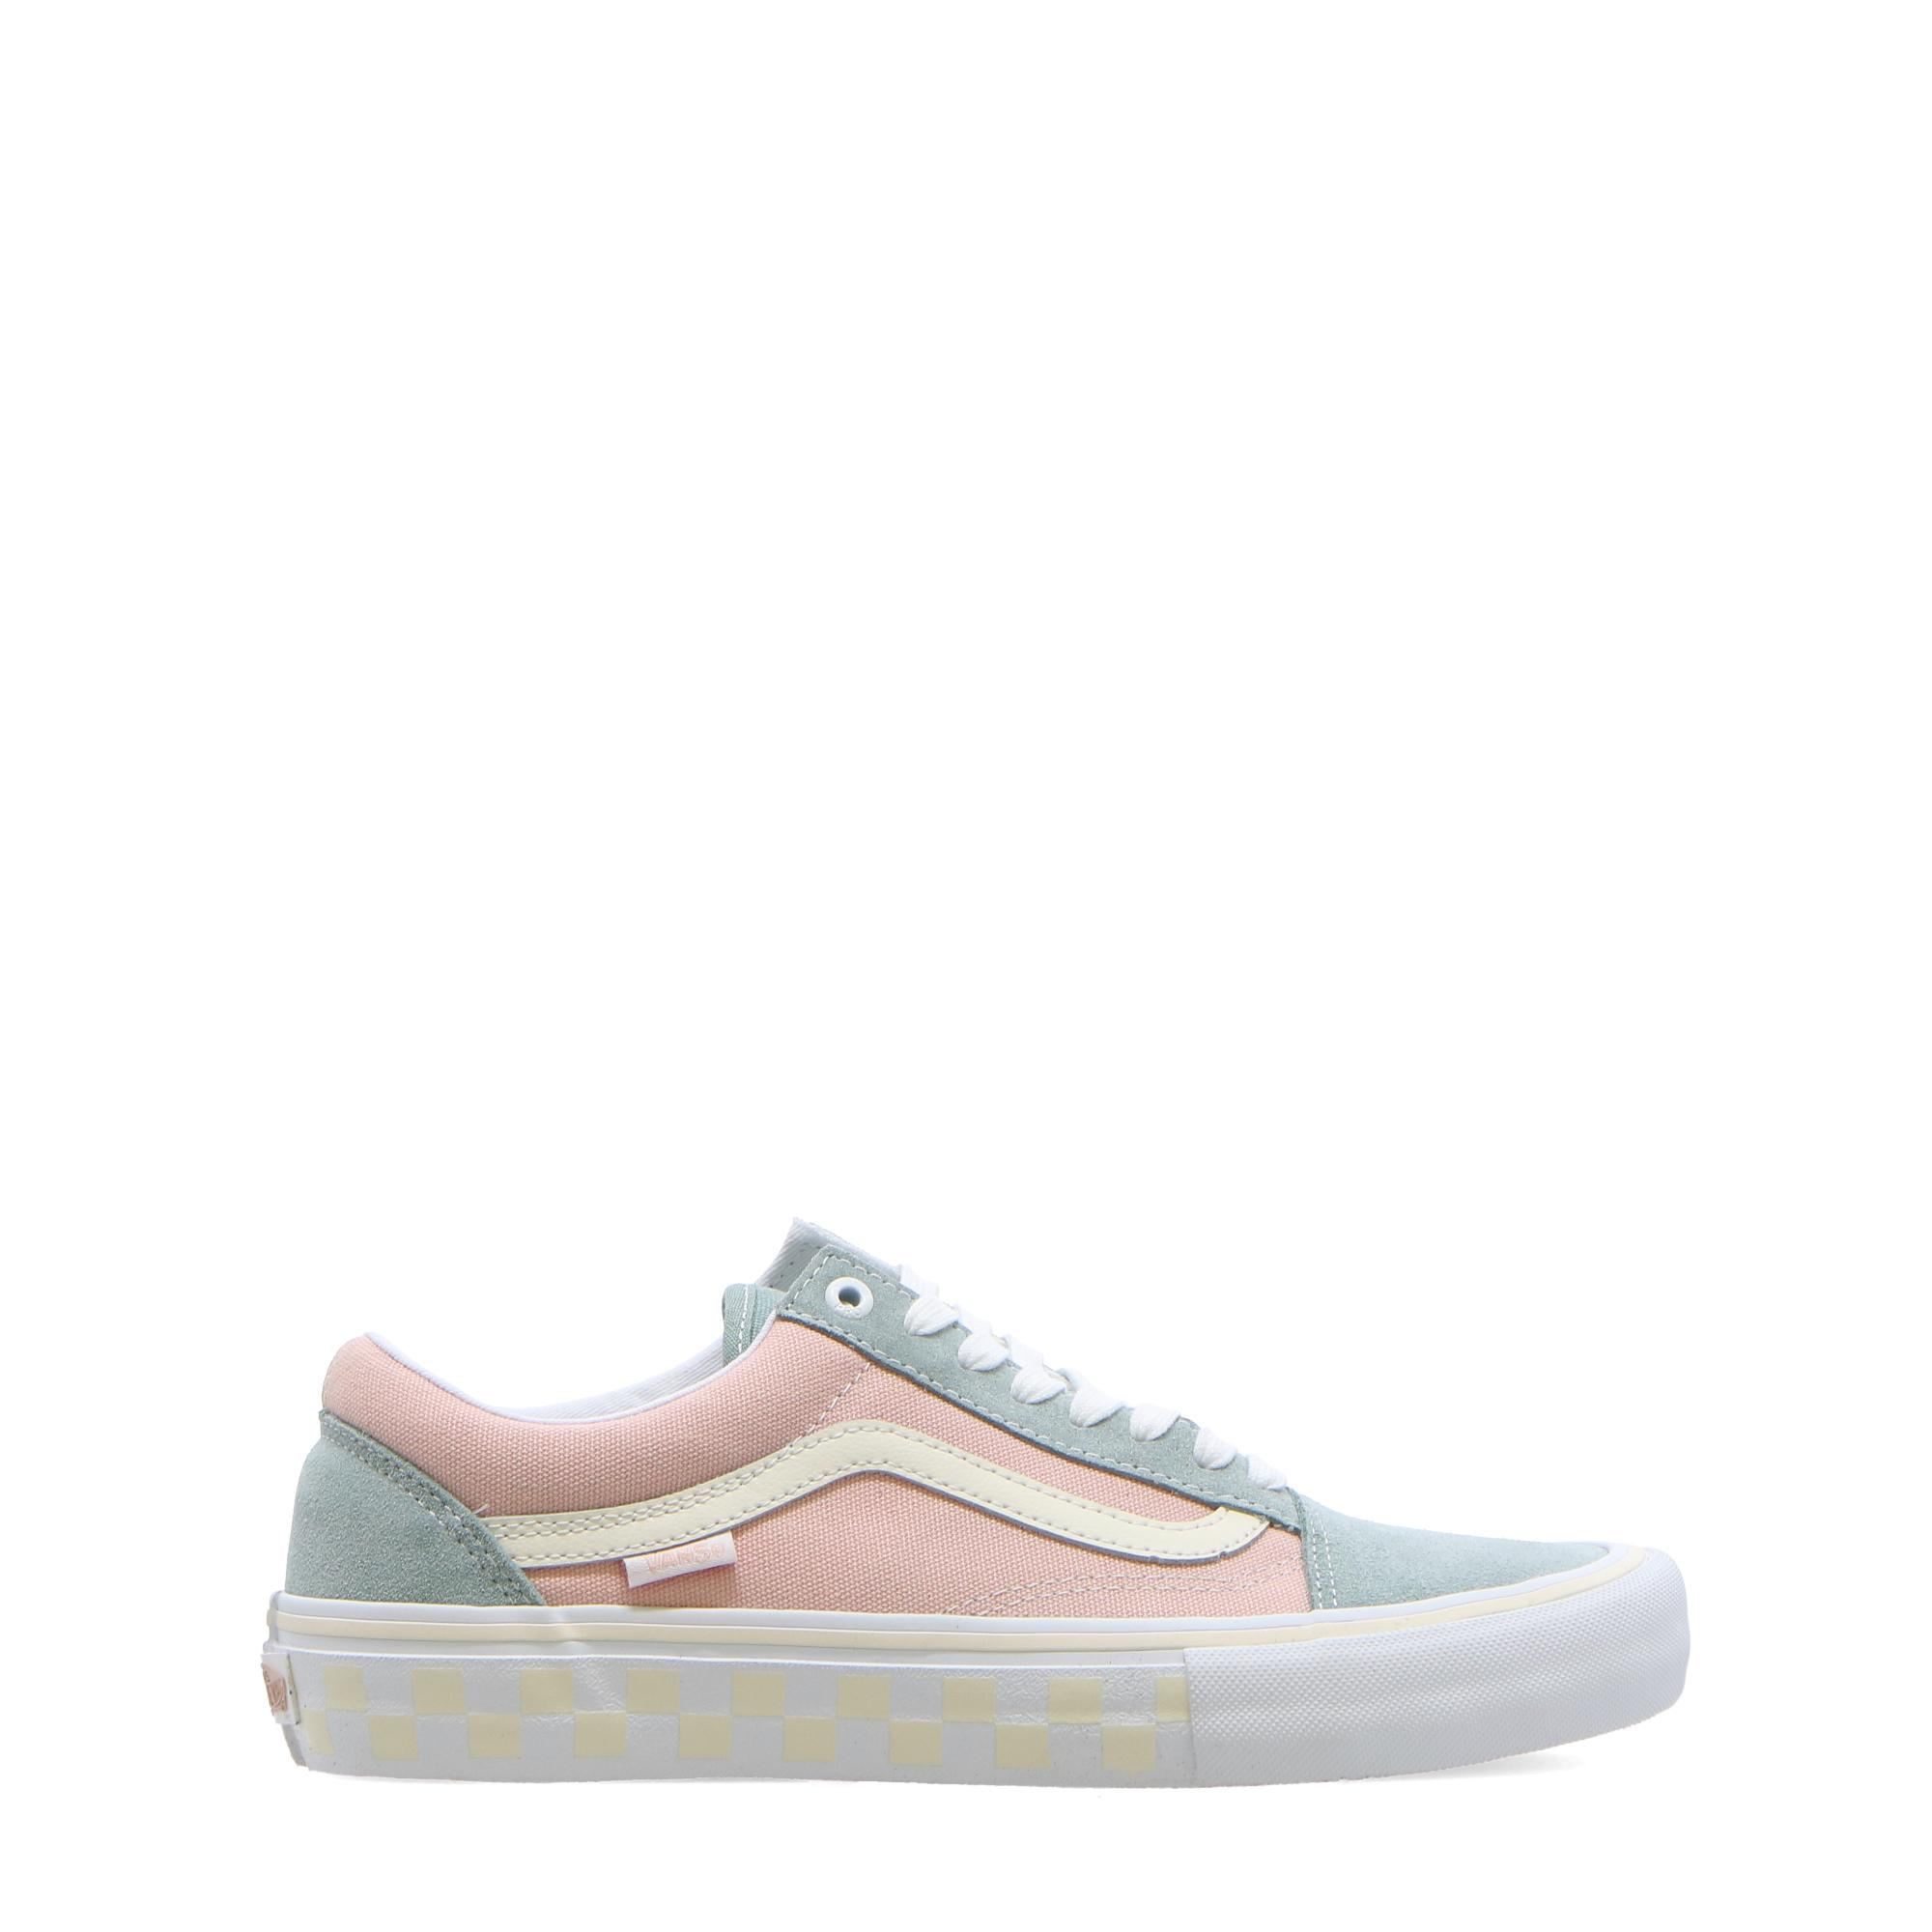 Vans Mn Old Skool Pro Washout peach blue